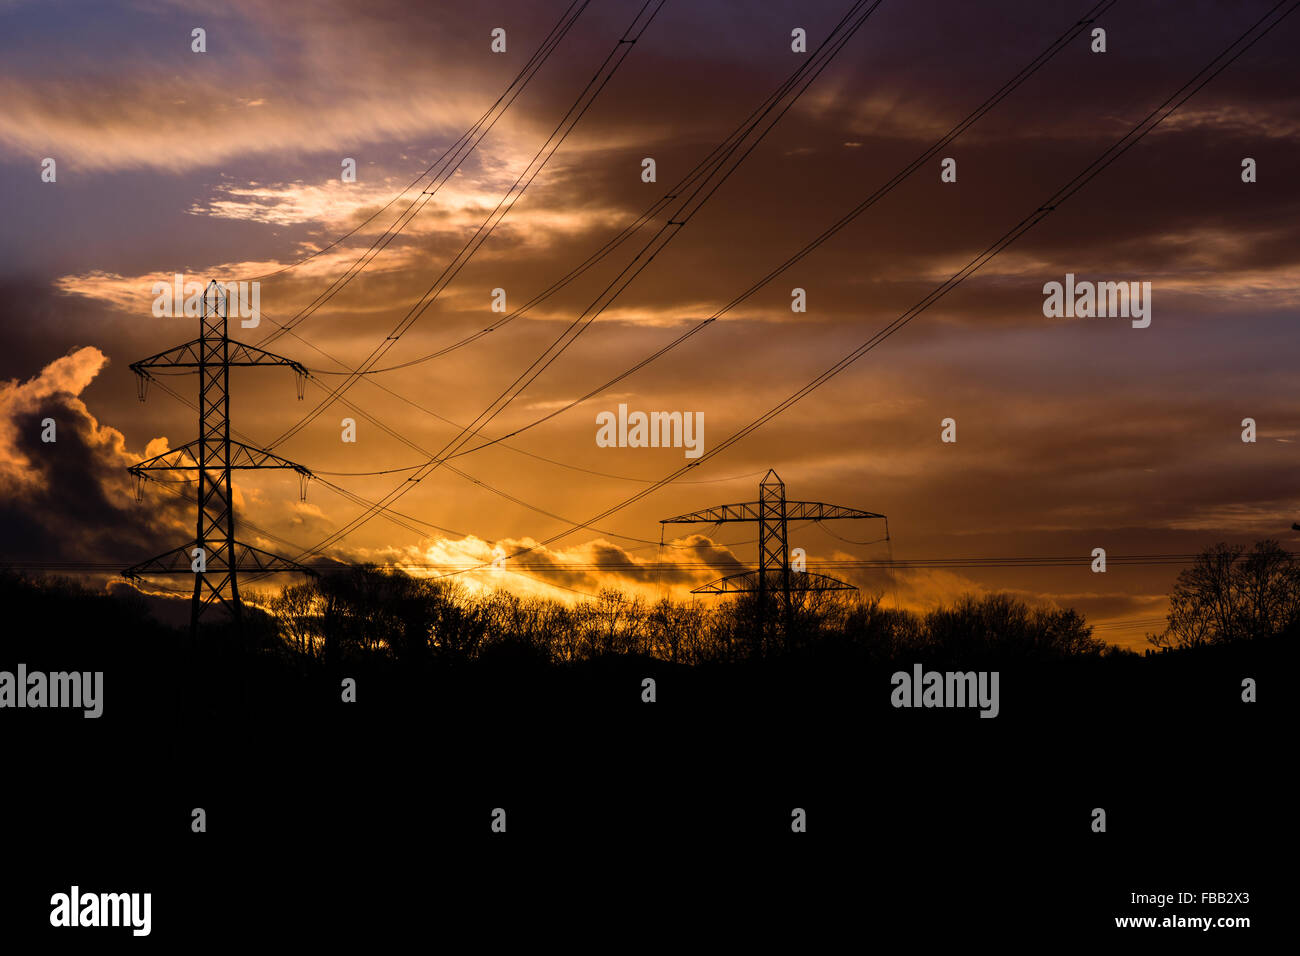 Industrial landscape with cables in front of sunset. Electricity cables and pylons are silhouetted in front of a - Stock Image